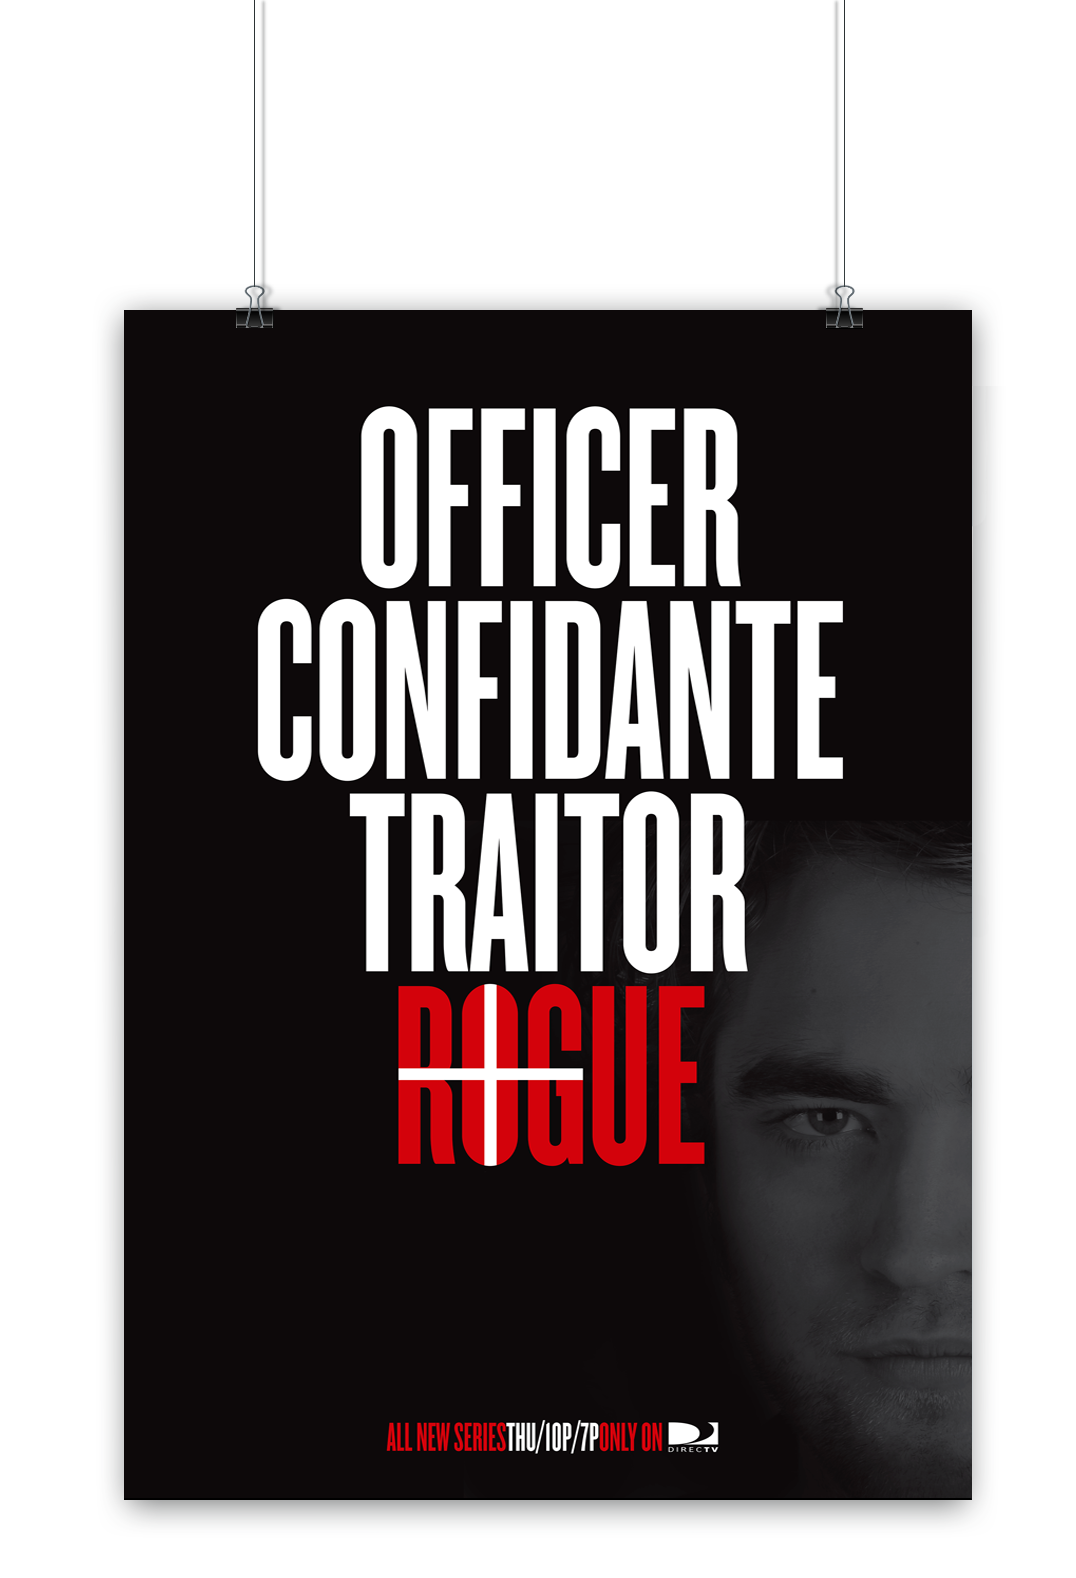 scottgericke_posters_rogue2.png